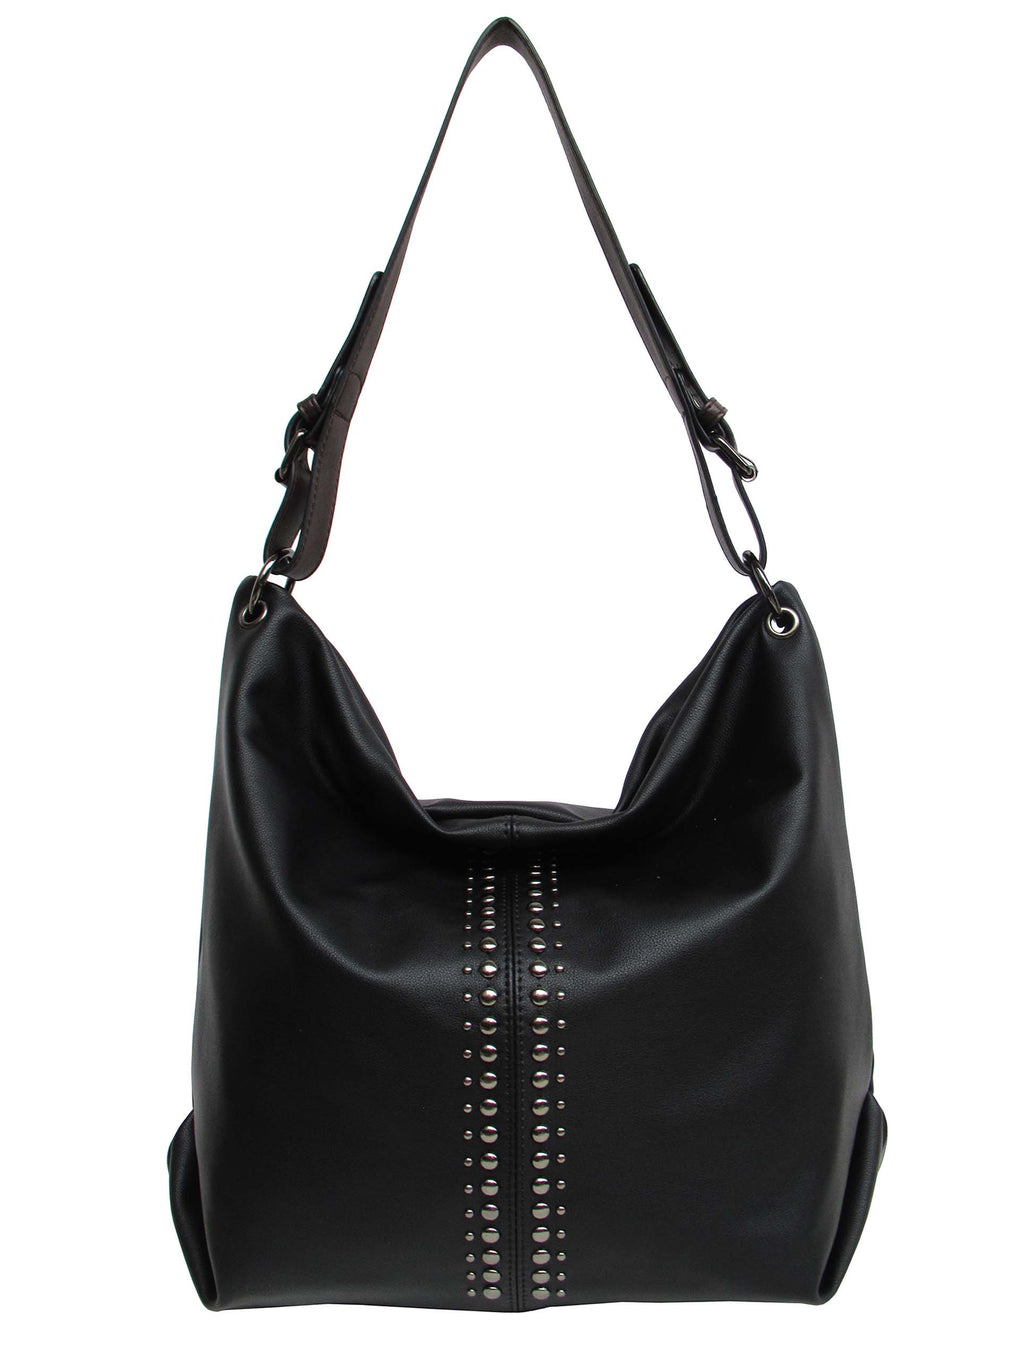 Black pass handbag with stud detail in centre